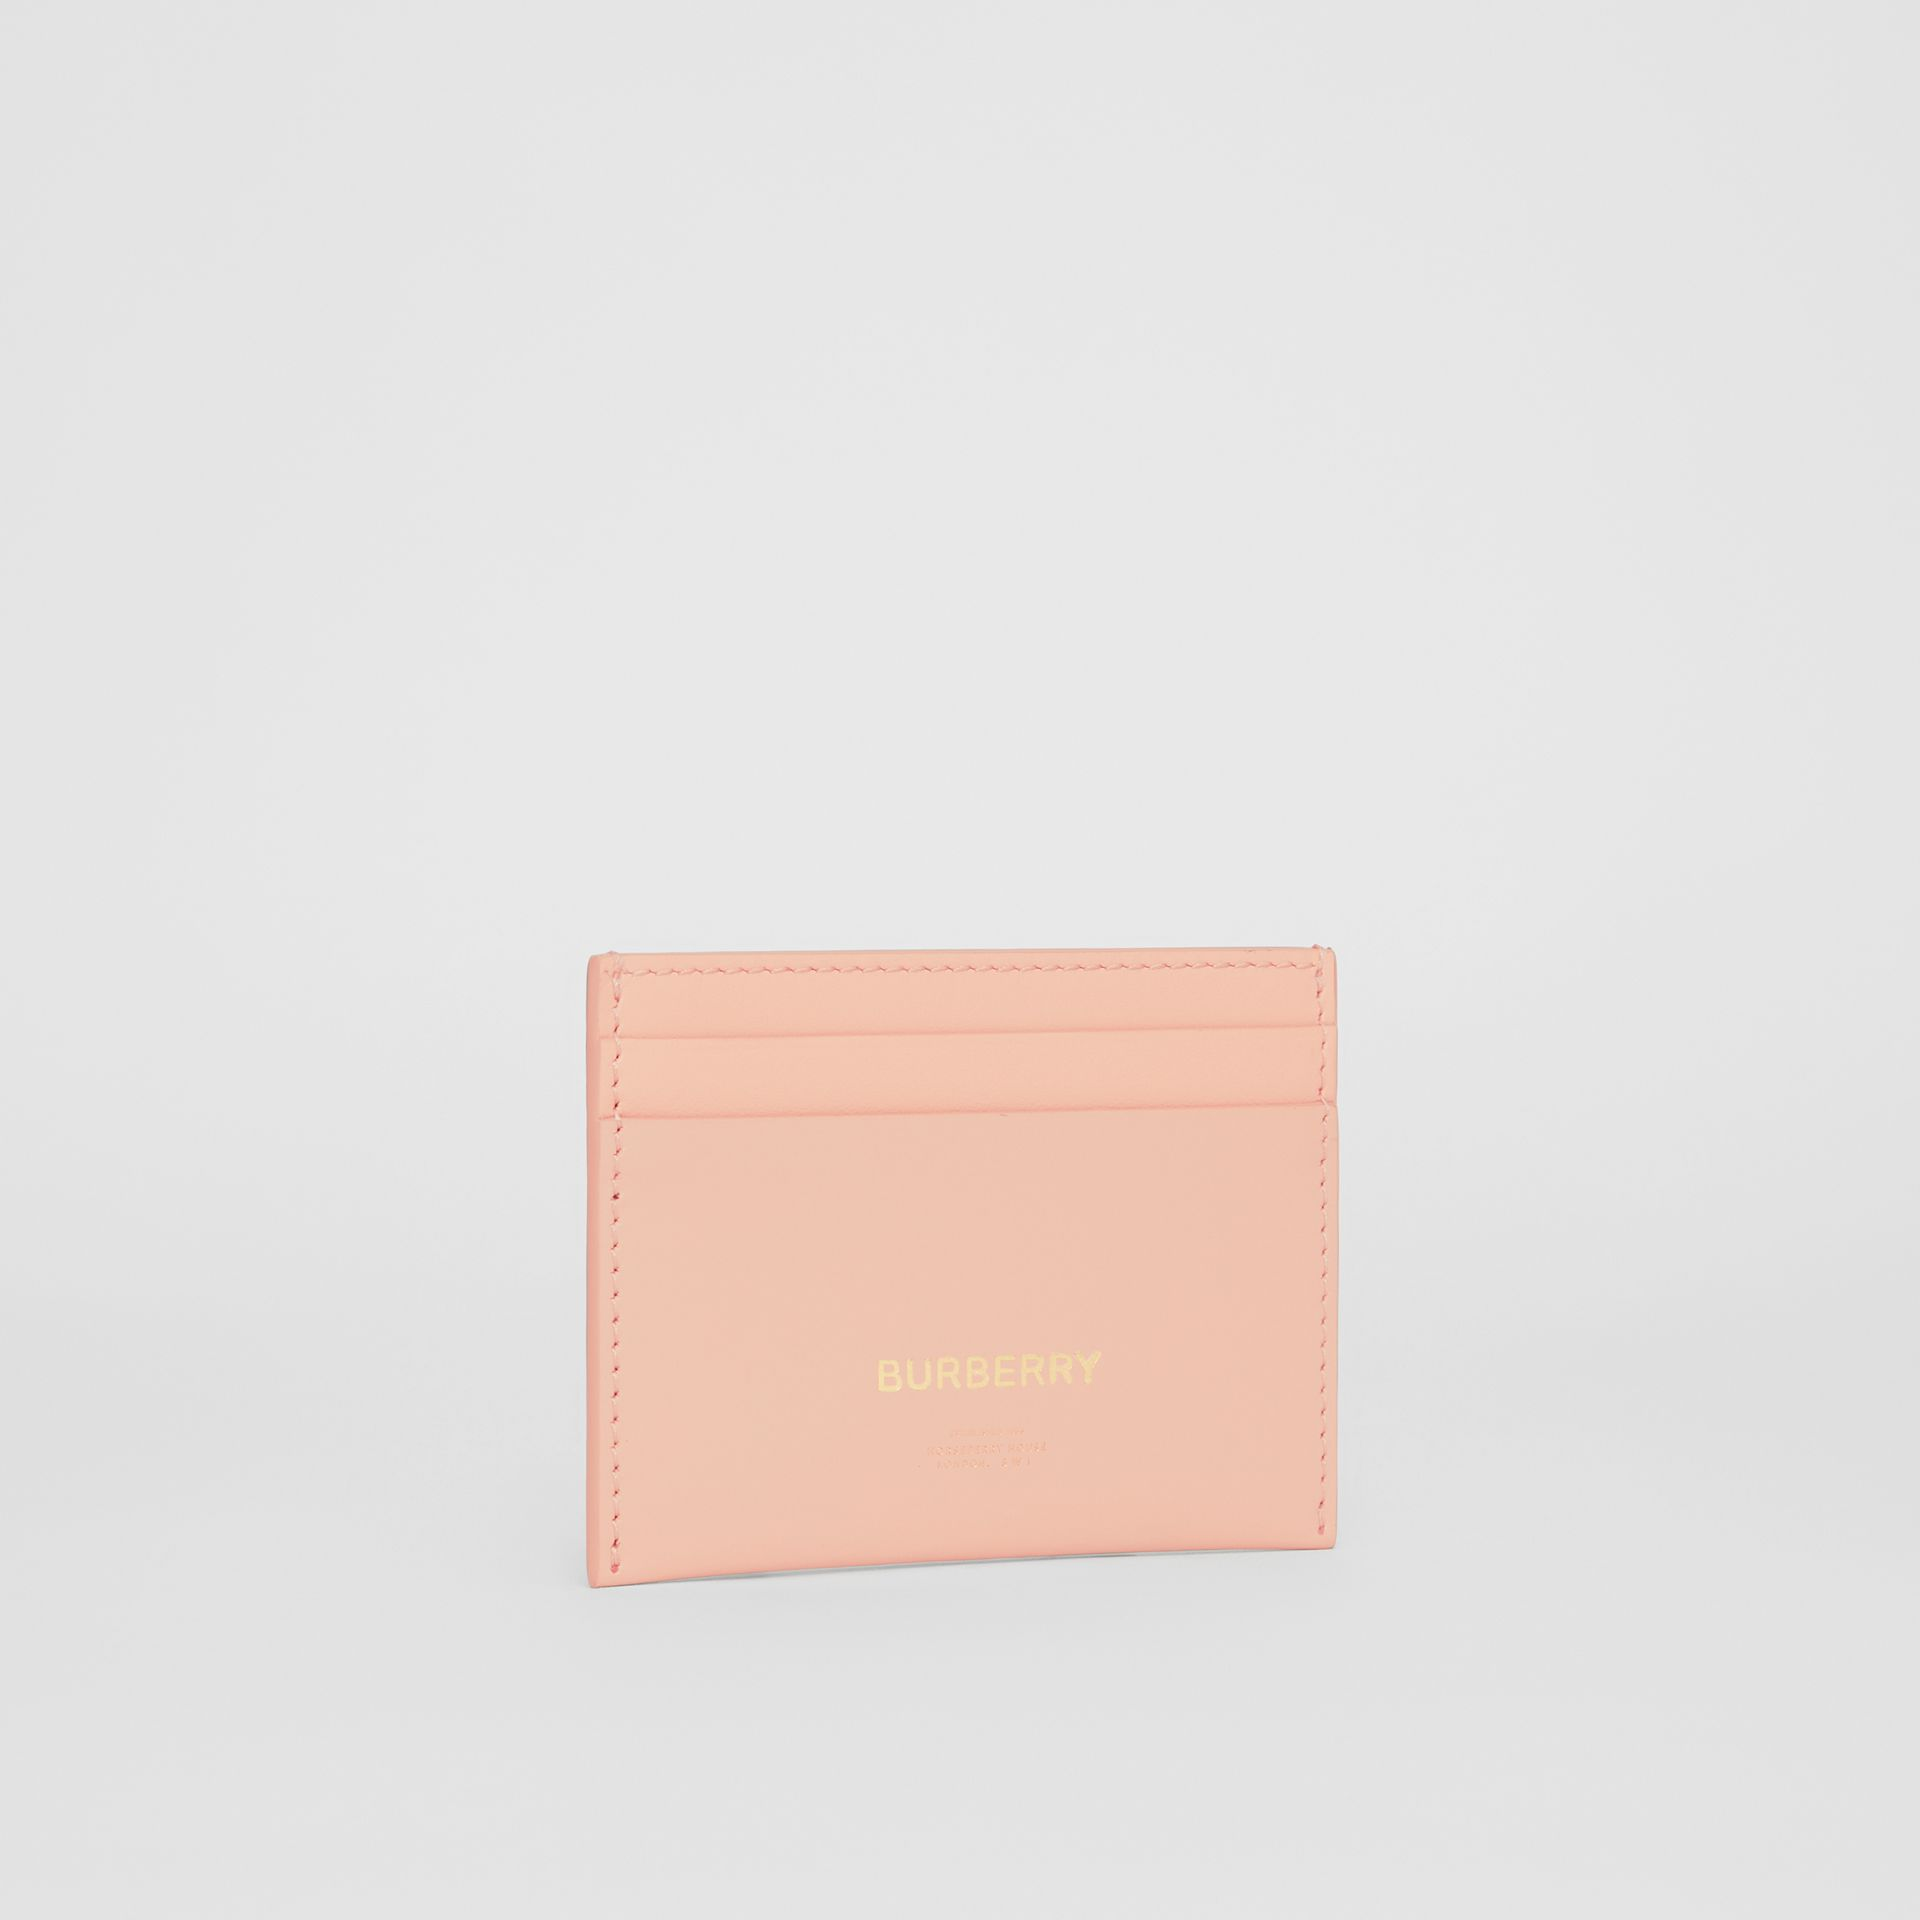 Horseferry Print Leather Card Case in Blush Pink - Women | Burberry - gallery image 3